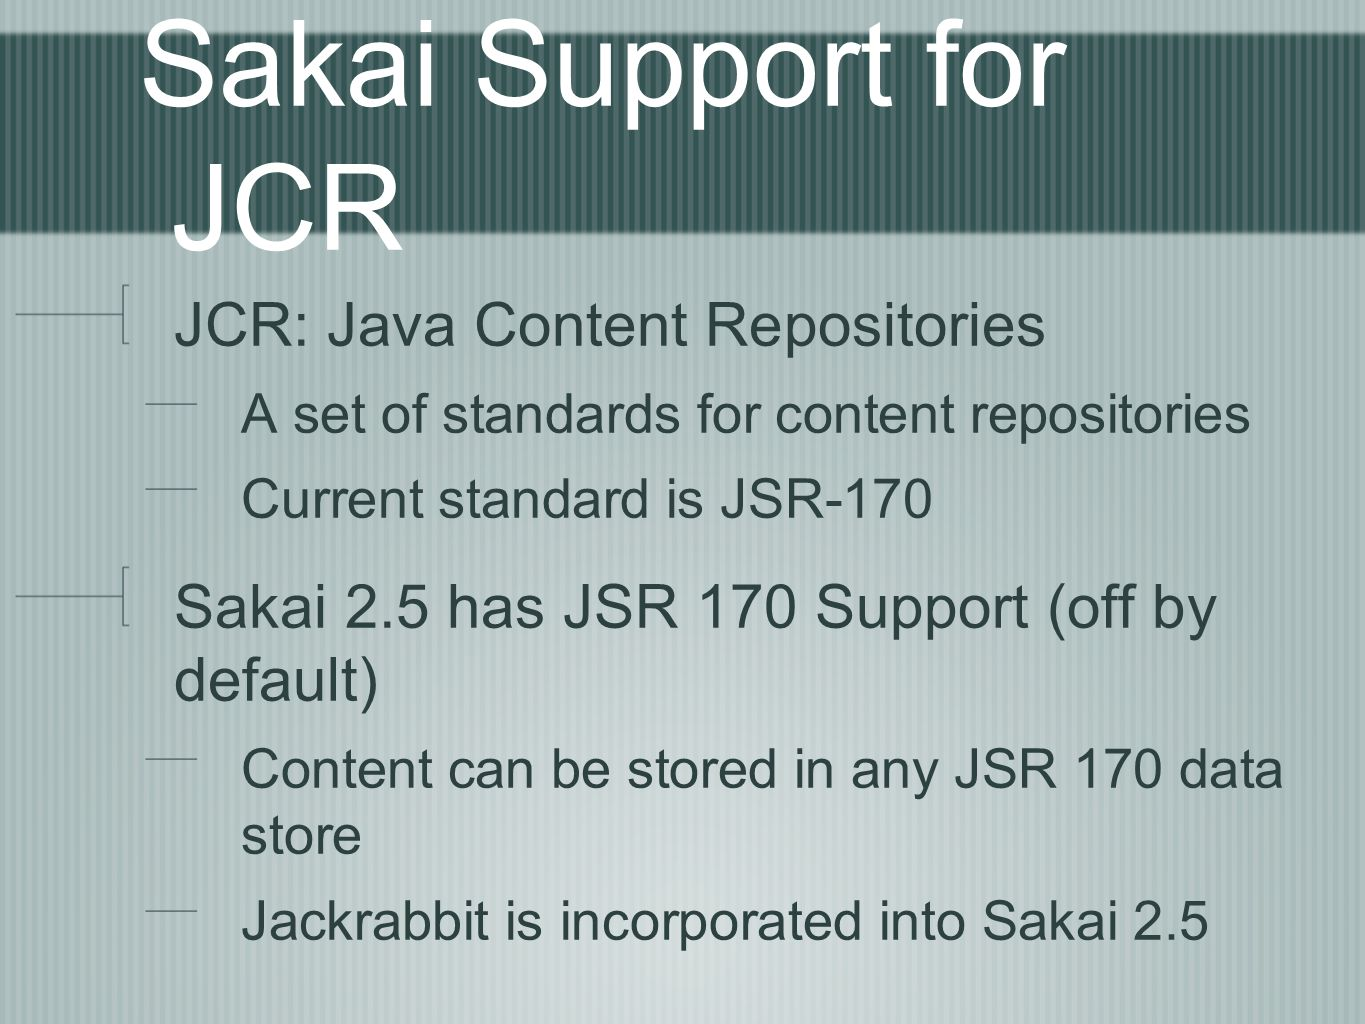 Sakai Support for JCR JCR: Java Content Repositories A set of standards for content repositories Current standard is JSR-170 Sakai 2.5 has JSR 170 Support (off by default) Content can be stored in any JSR 170 data store Jackrabbit is incorporated into Sakai 2.5